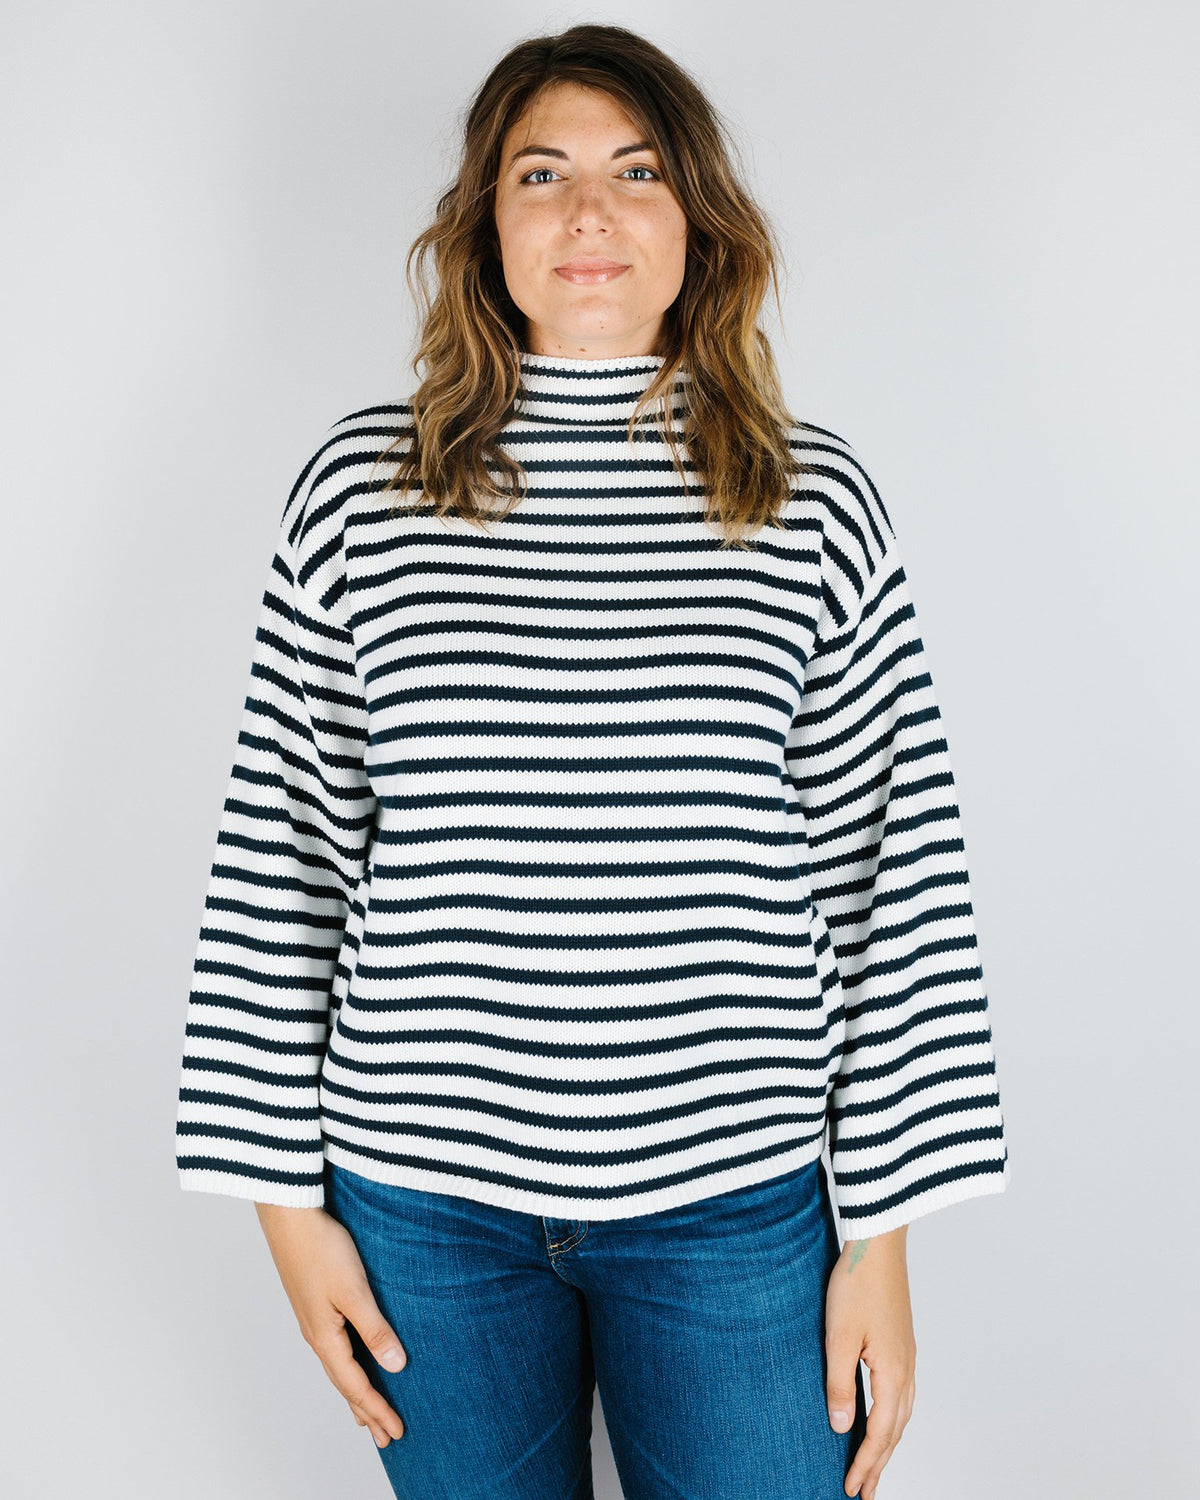 Demylee Clothing Agata Stripe Sweater in Navy & Off White